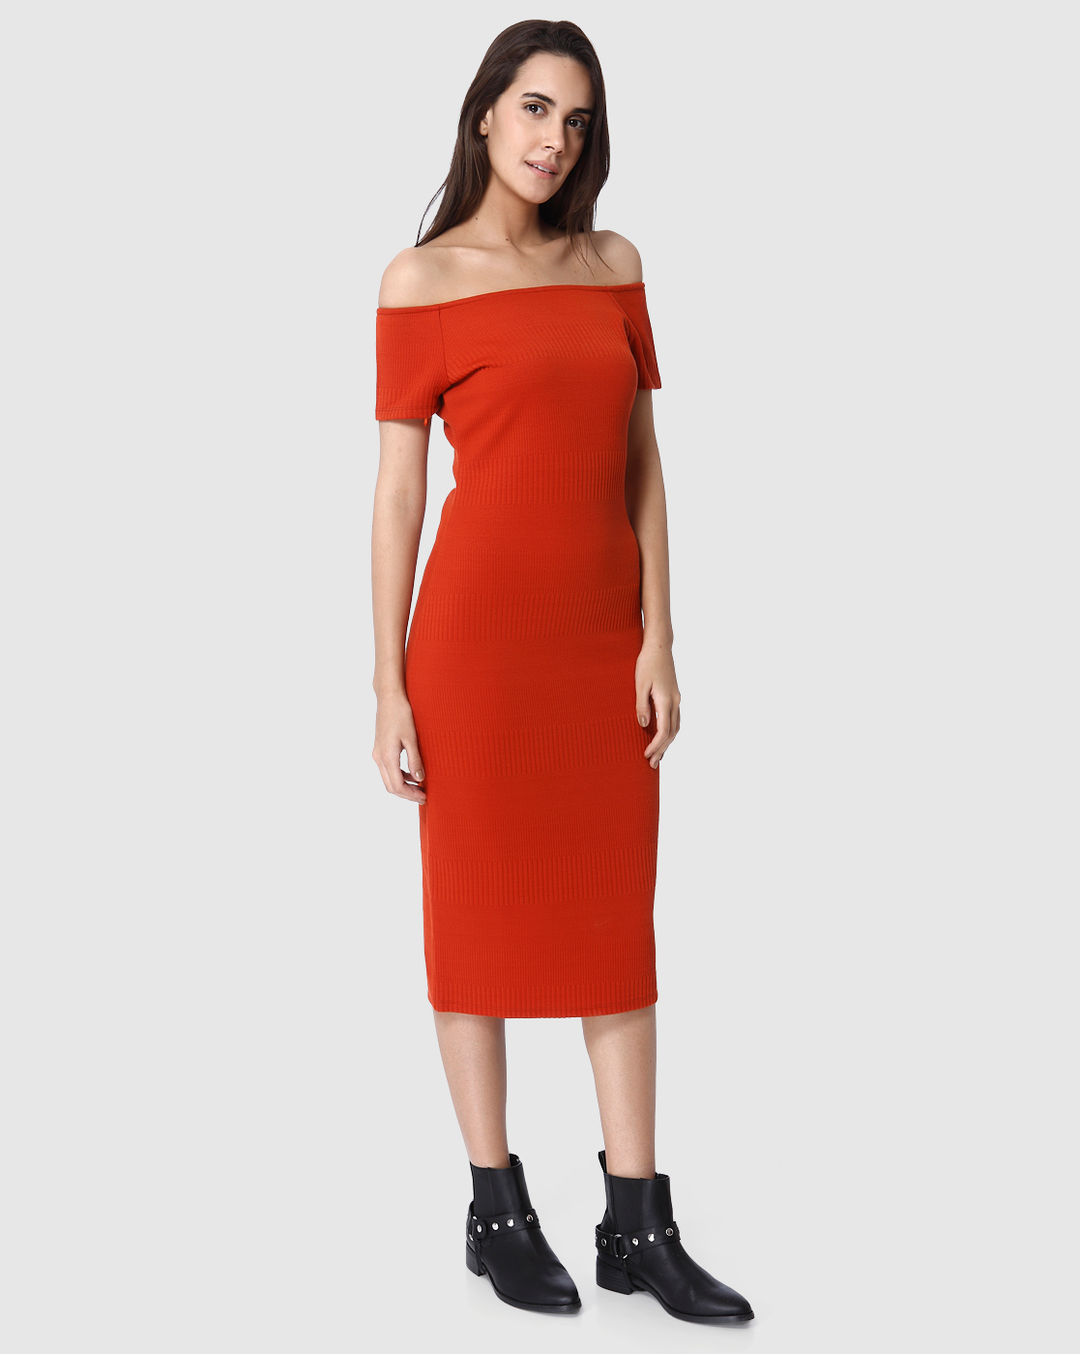 the latest 6c9e7 743a4 Buy Vero Moda Red Off Shoulder Bodycon Midi Dress Online ...